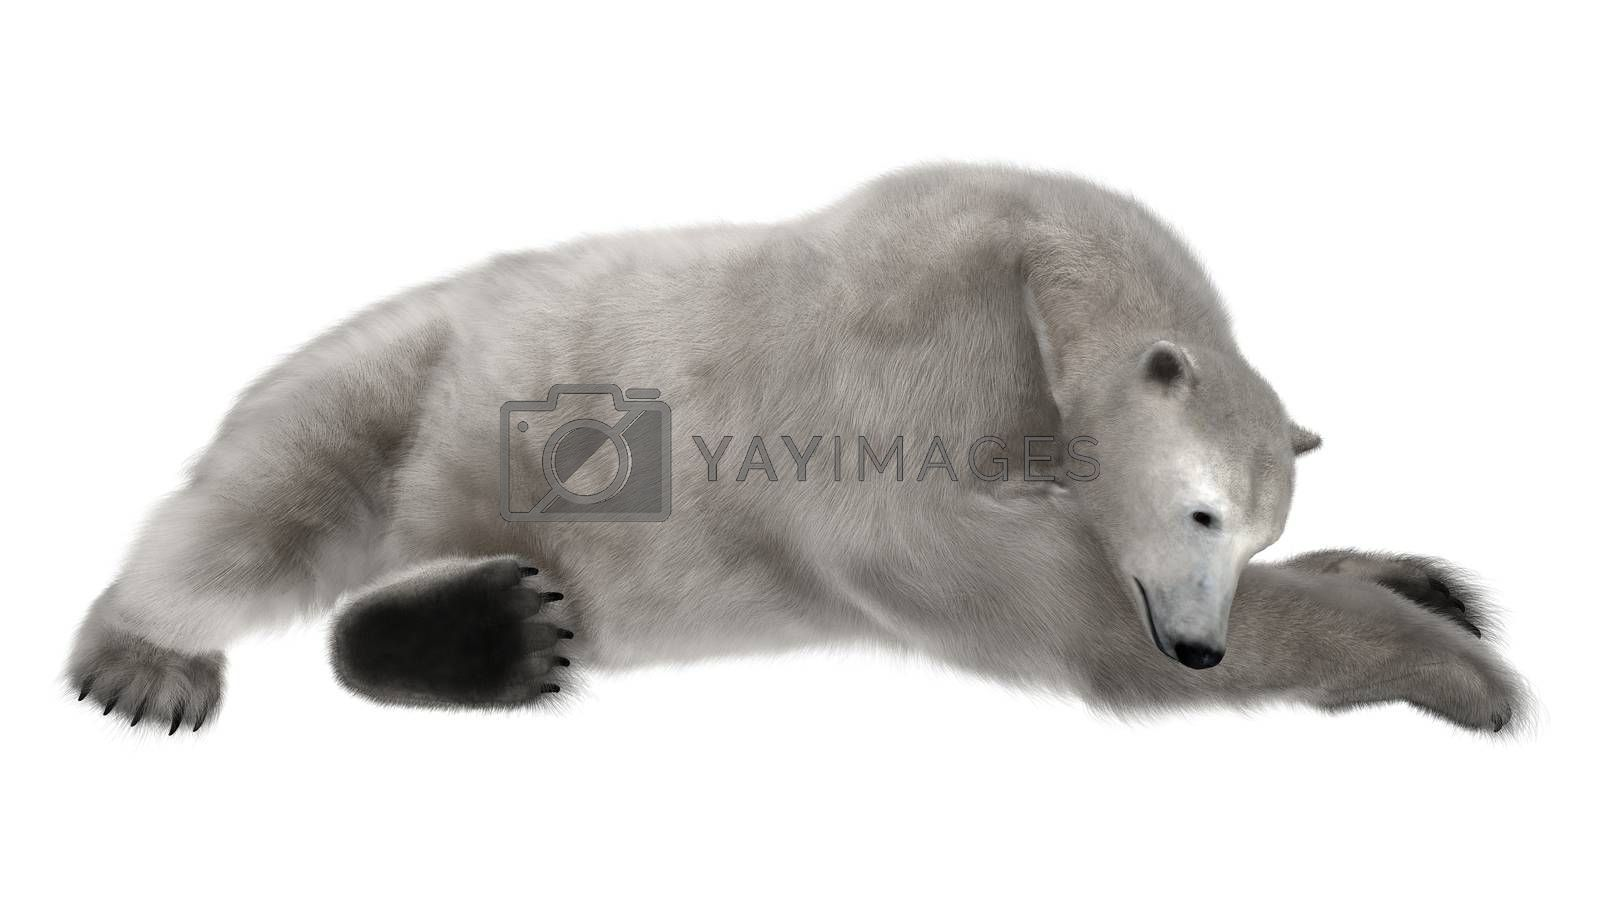 3D digital render of a polar bear resting isolated on white background